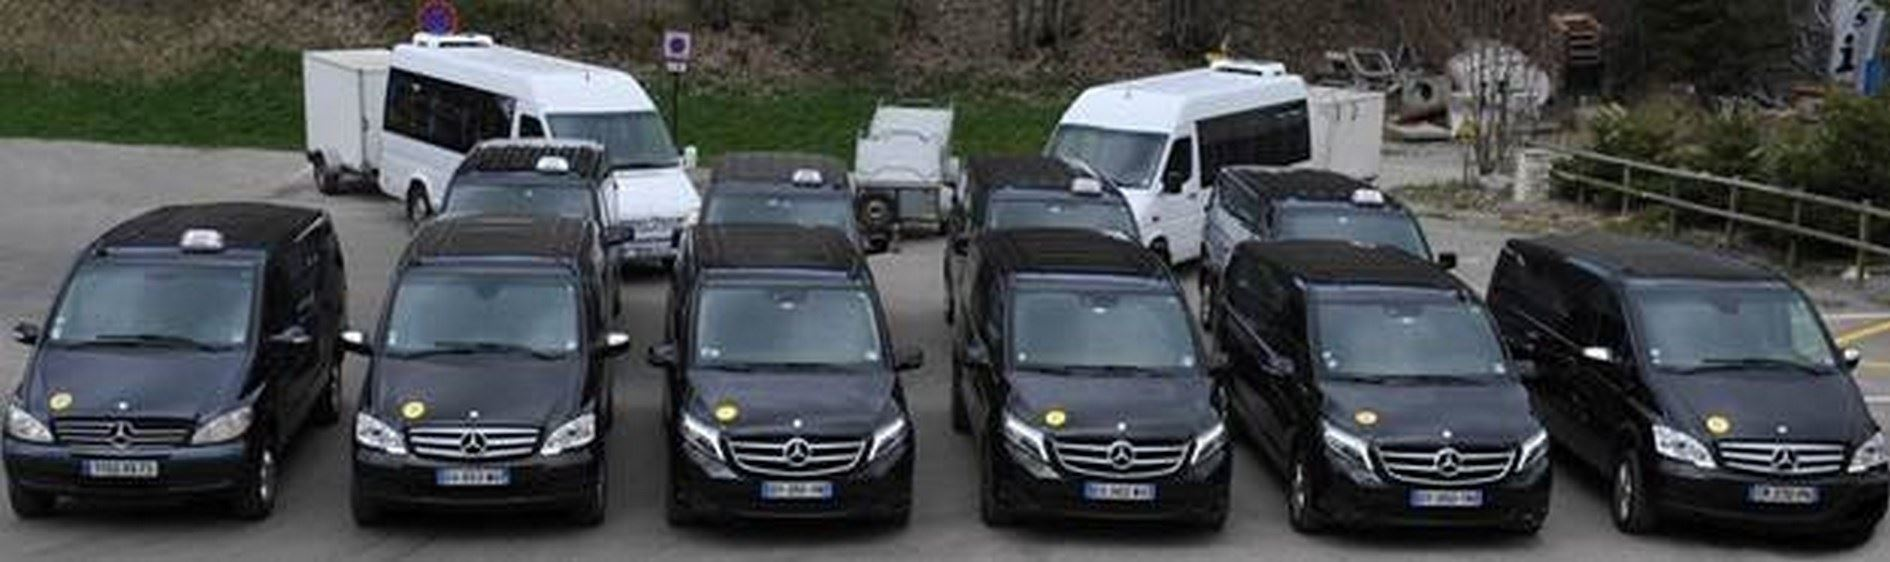 PRIVATE TRANSFER FROM ANNECY TRAIN STATION - ALPES TAXIS TRANSPORTS